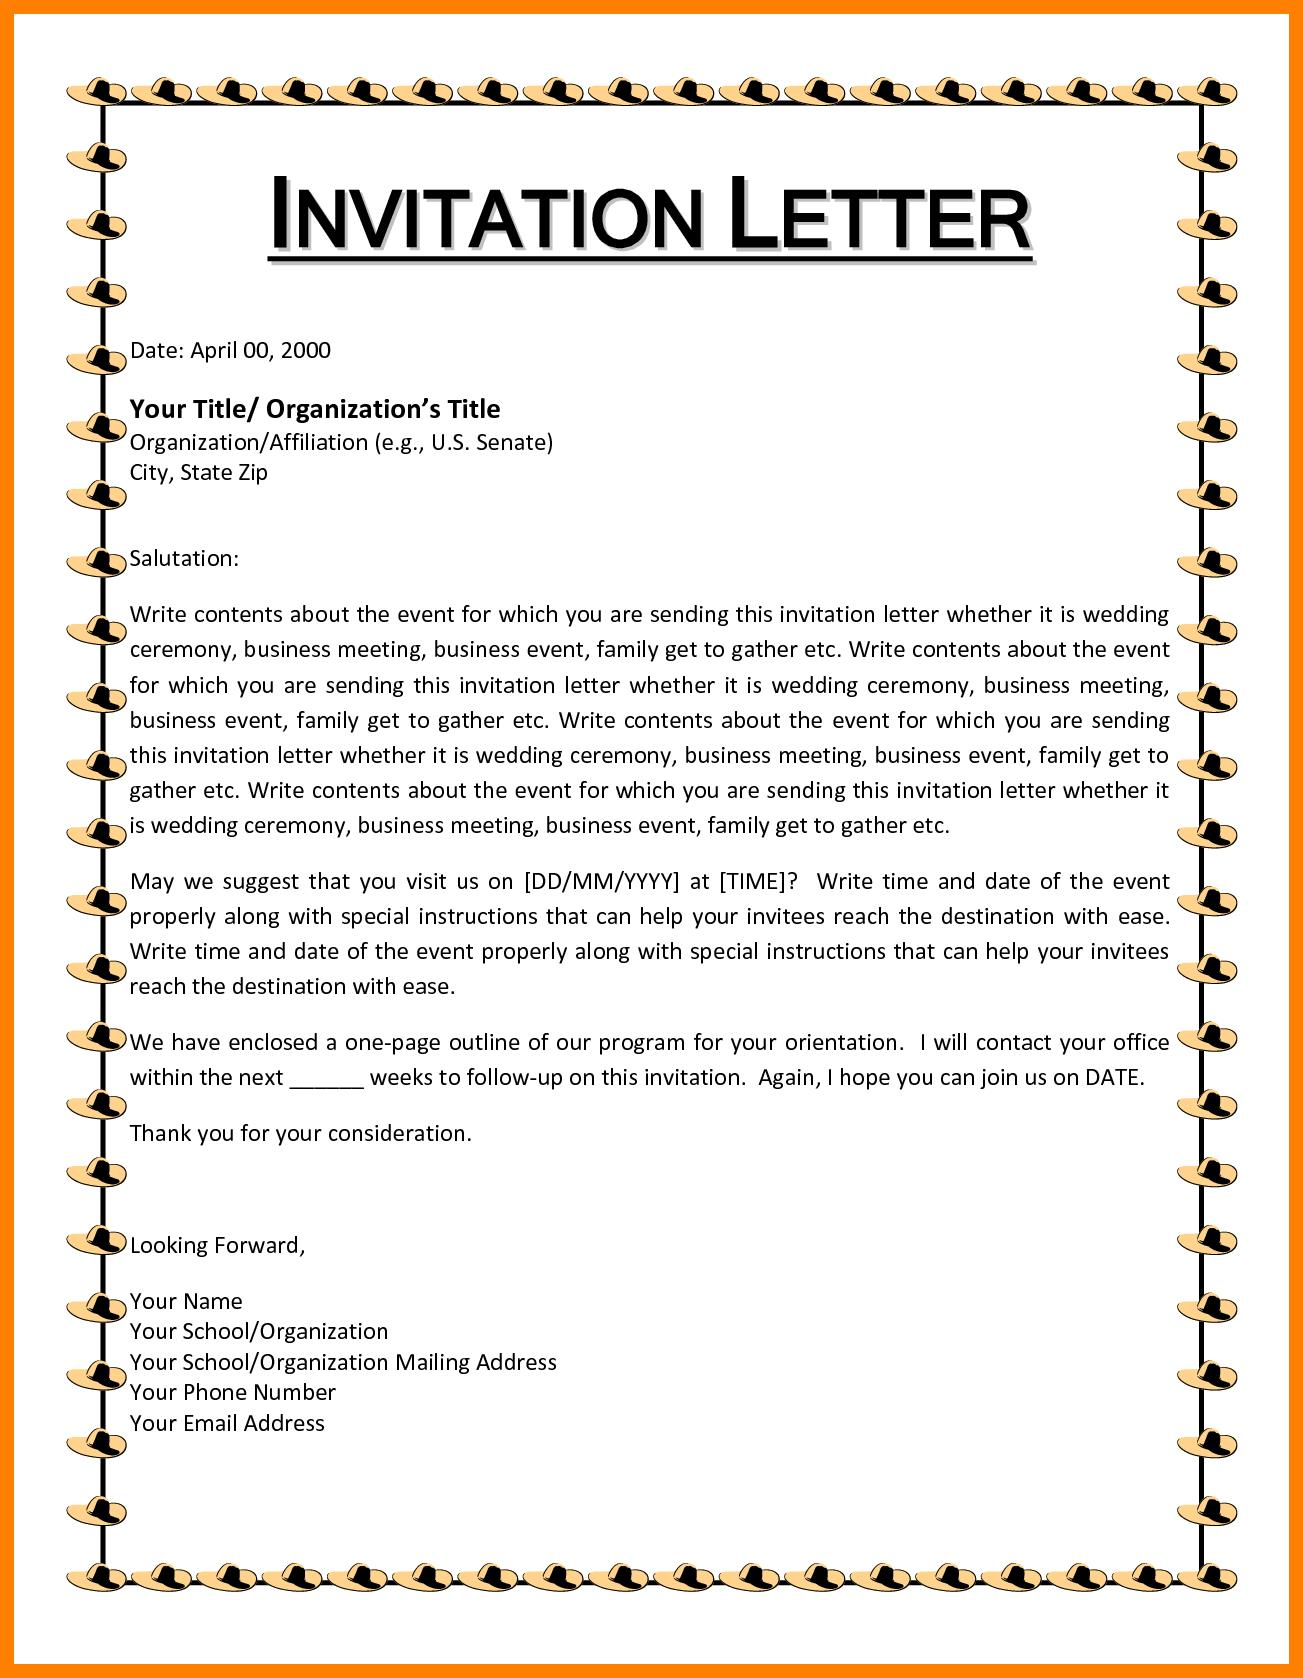 letter for birthday party invitation ; bunch-ideas-of-birthday-invitation-letter-twentyeandi-also-how-to-write-a-invitation-letter-for-birthday-party-of-how-to-write-a-invitation-letter-for-birthday-party